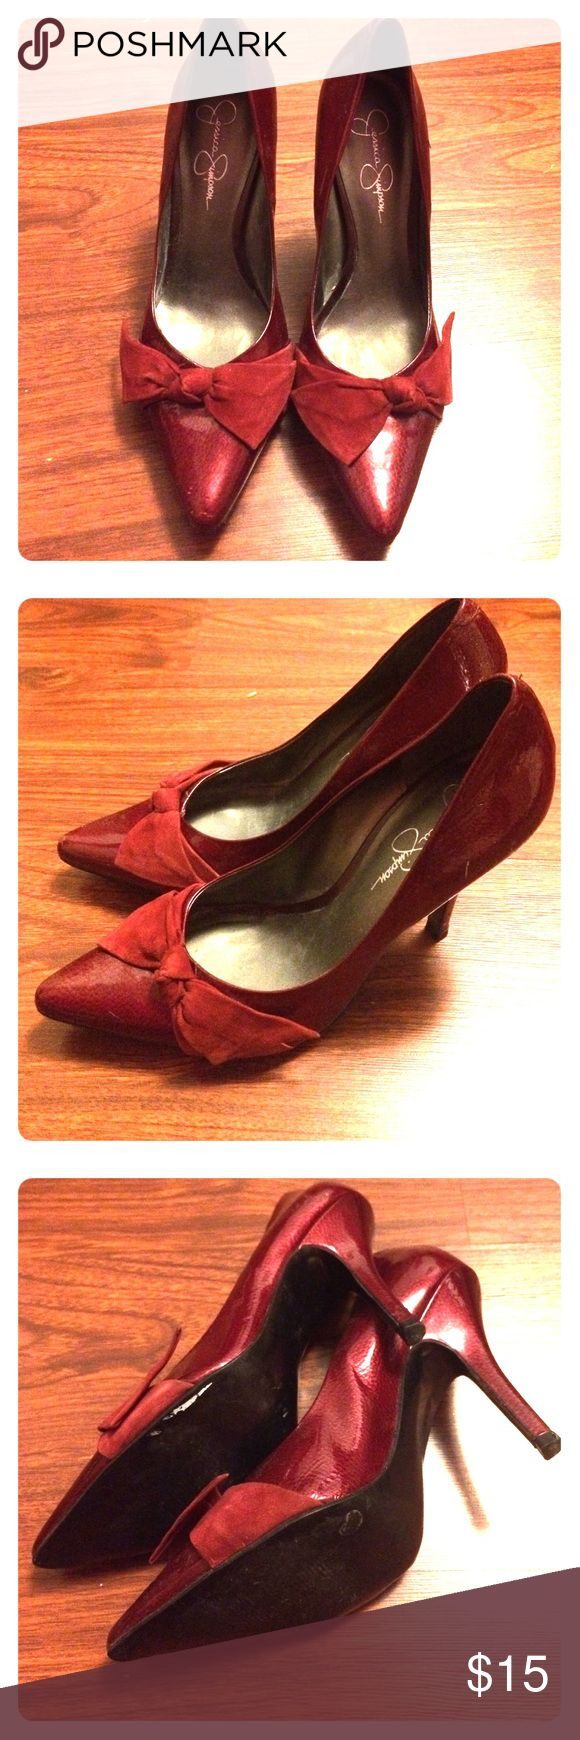 Jessica Simpson Red Heels size 8b Gently used Jessica Simpson's red heels with bow tie. Heel height is 4 inches. Jessica Simpson Shoes Heels